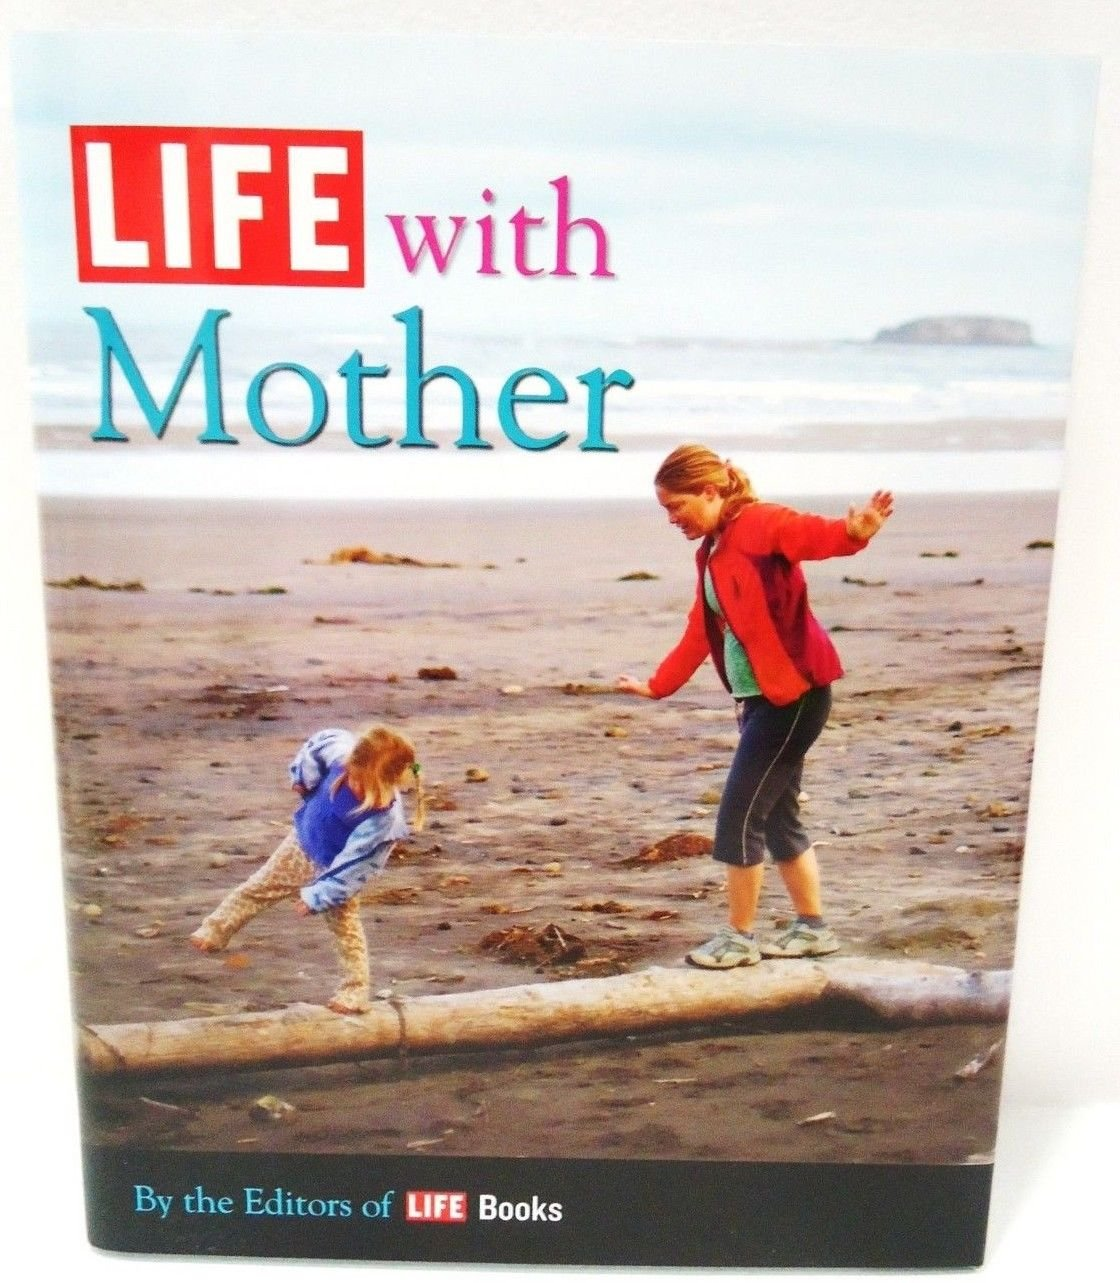 LIFE WITH MOTHERS - TIME - LIFE - BOOKS - PHOTOGRAPHS - BRAND NEW - MOTHER'S DAY